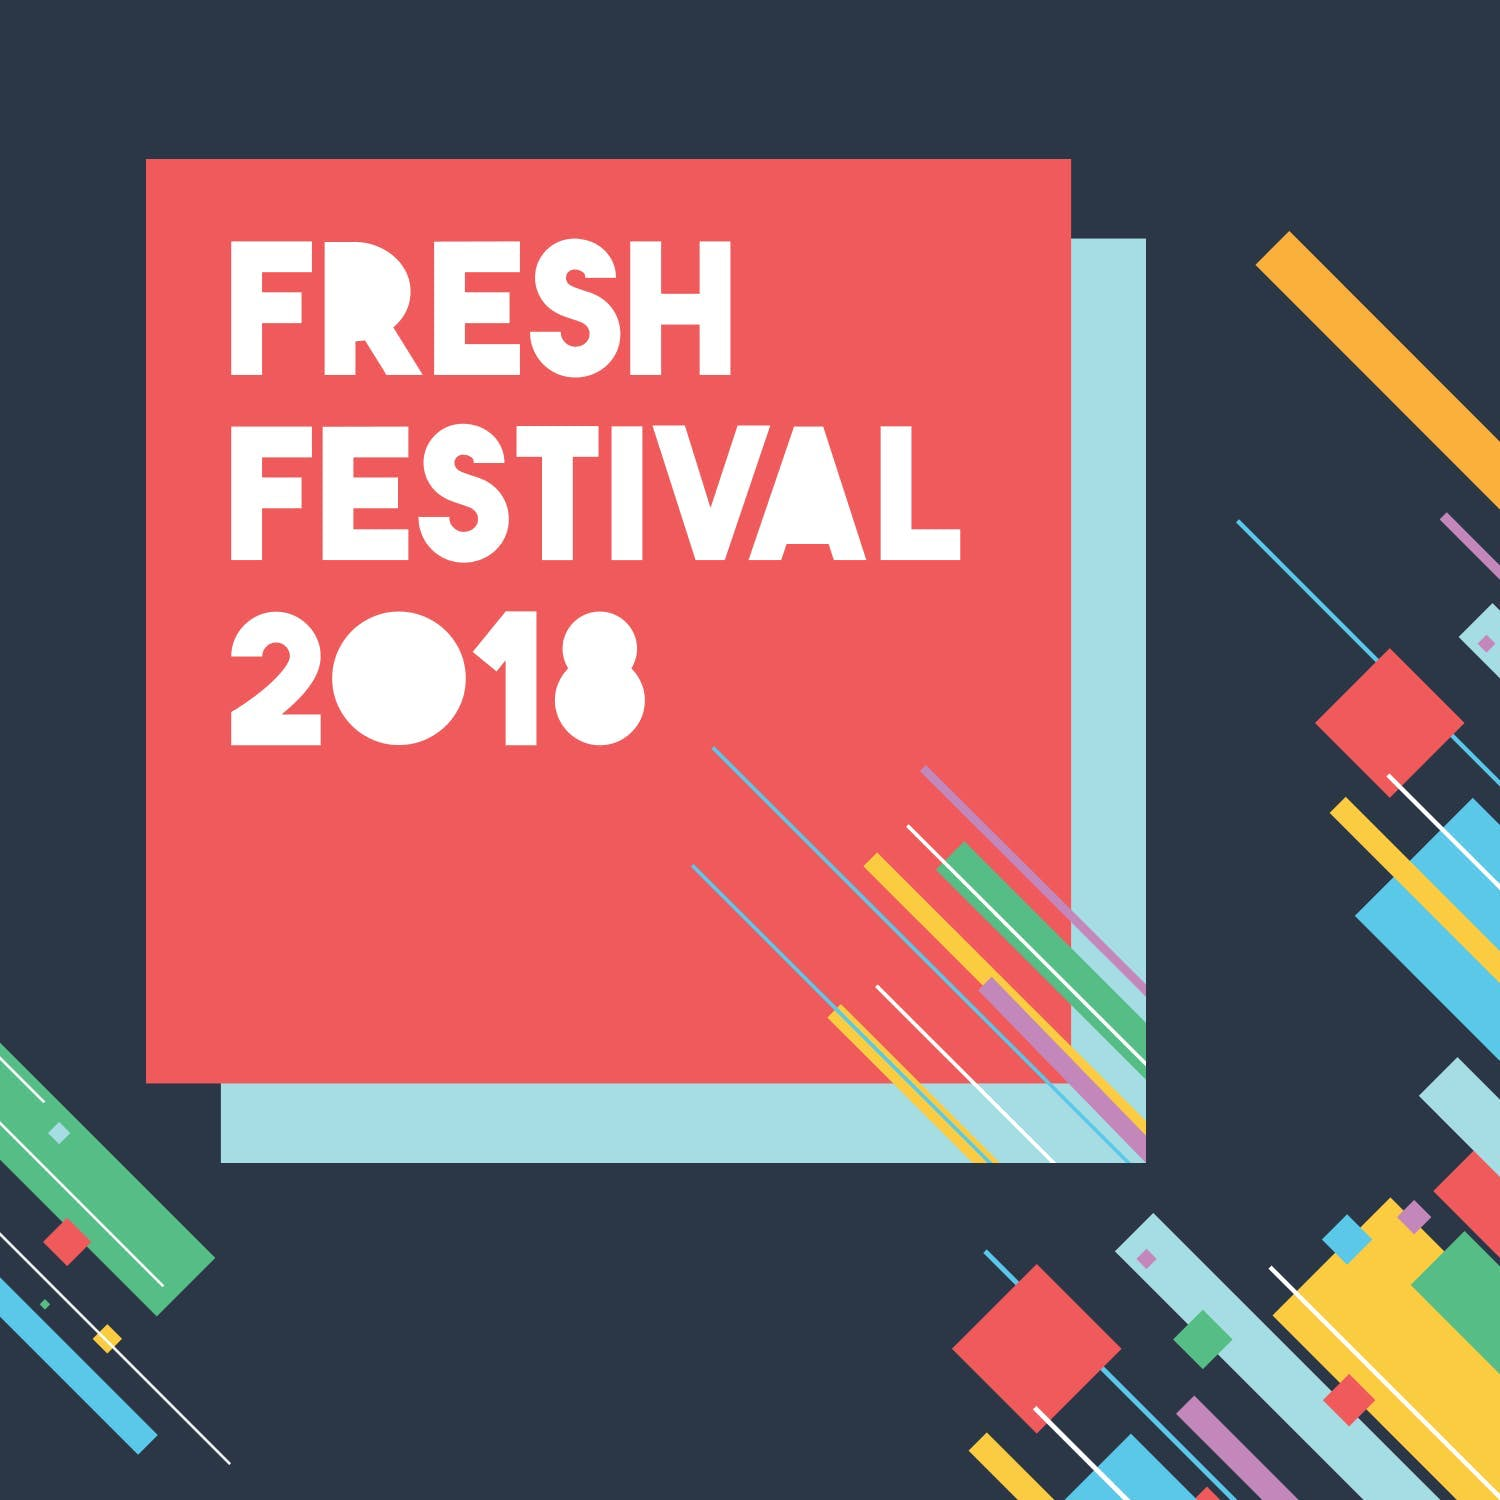 Fresh Festival 2018 is nearly here!